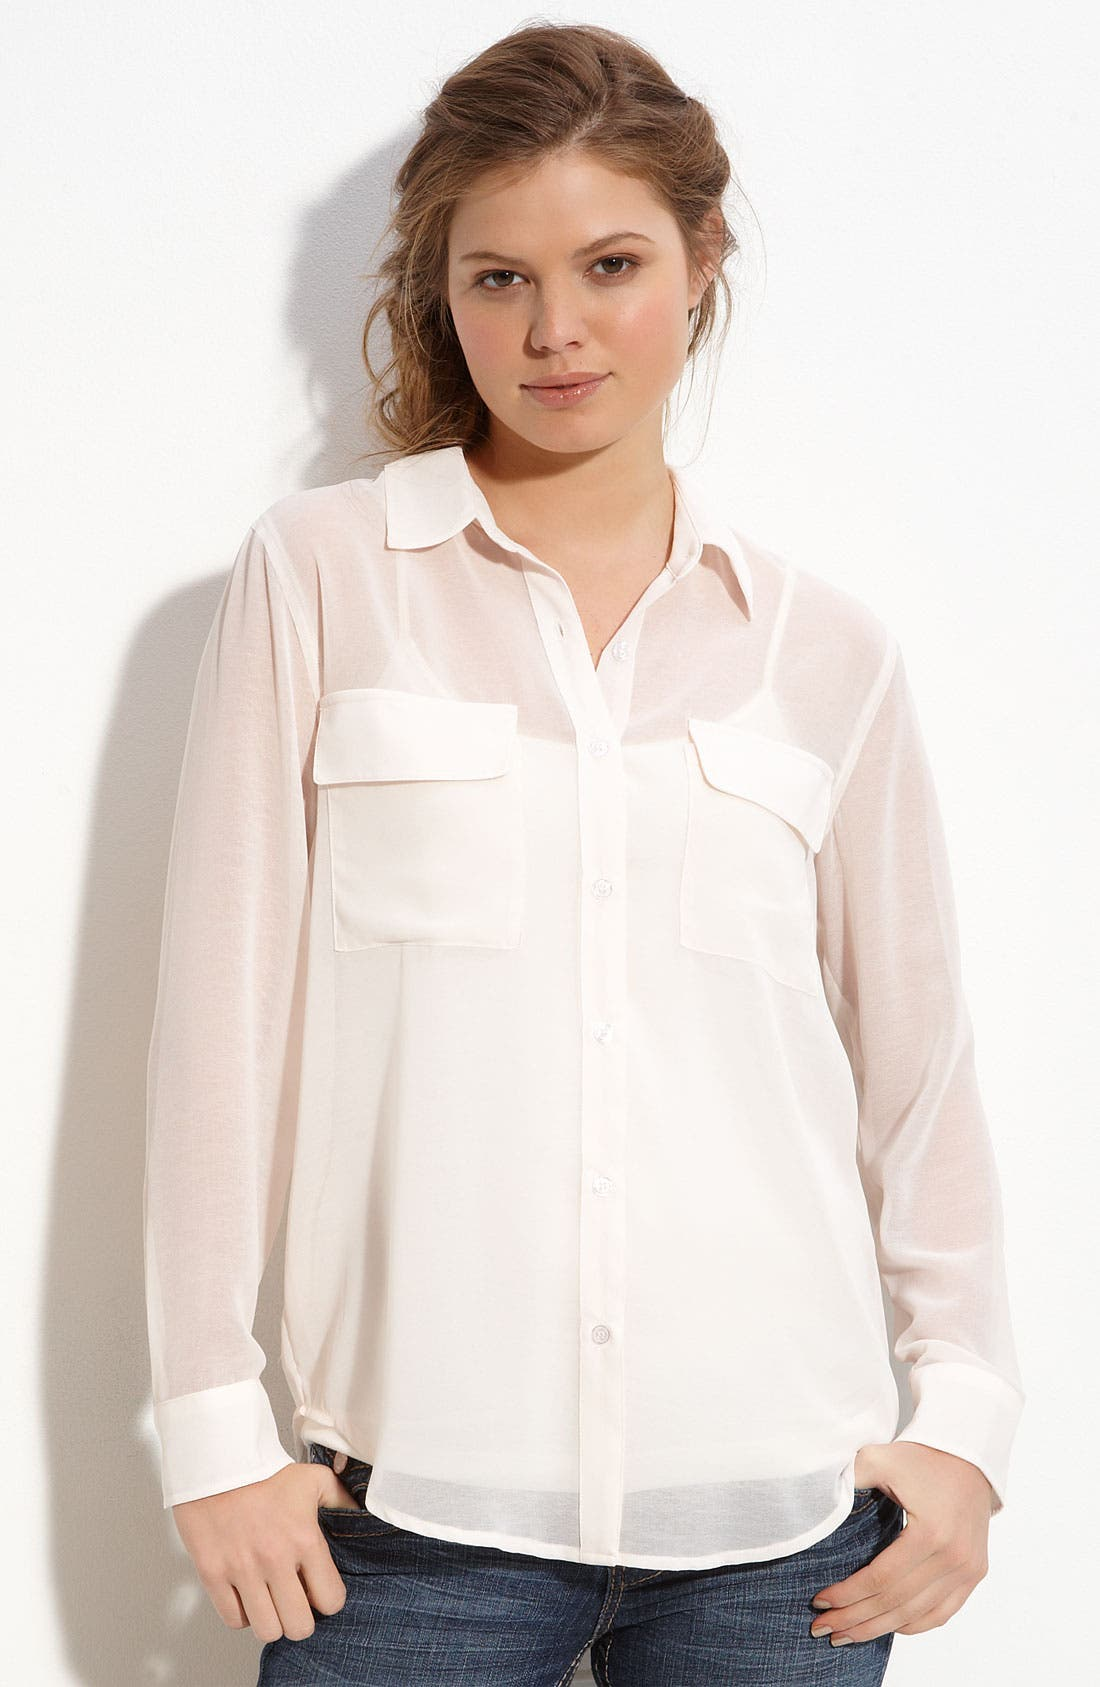 Alternate Image 1 Selected - Lush Button Front Blouse (Juniors)